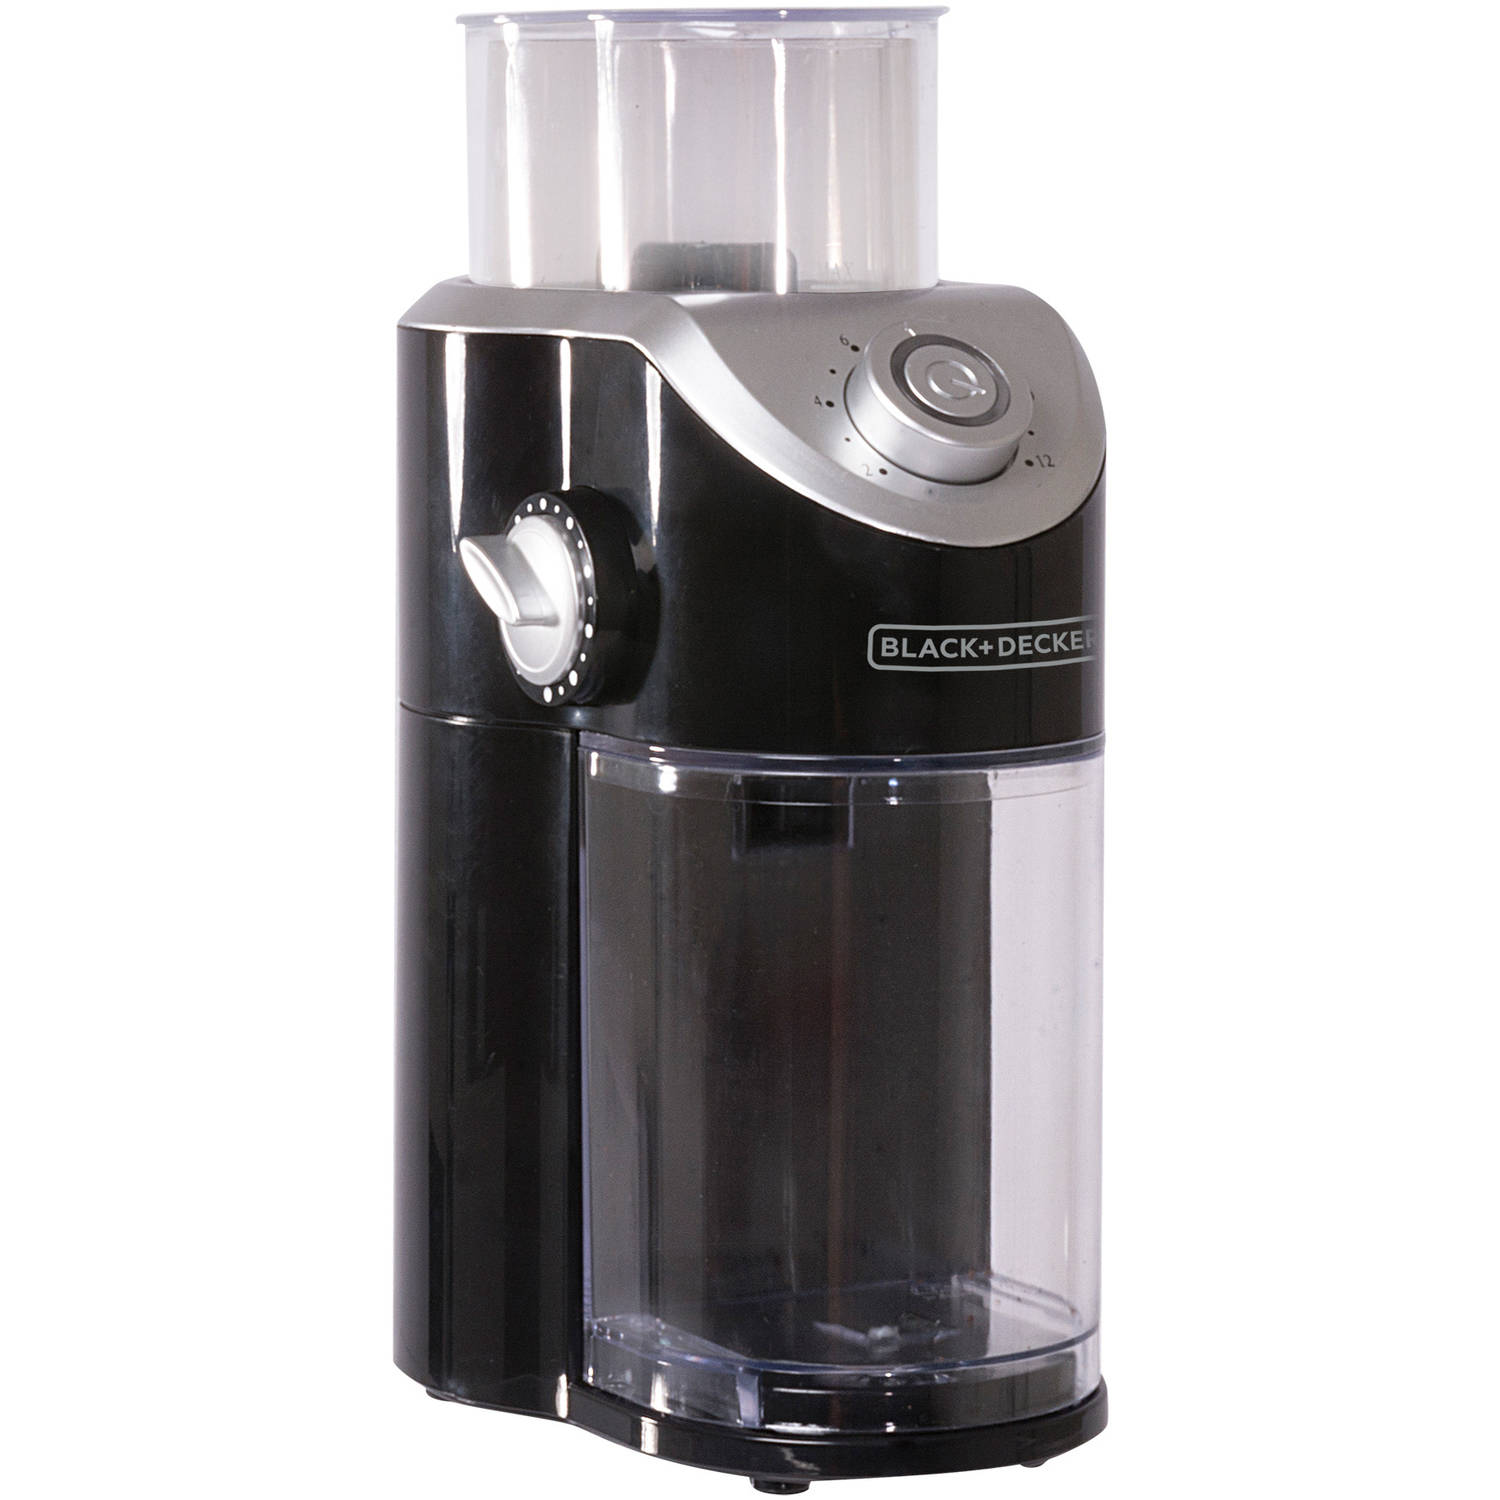 BLACK+DECKER Burr Mill Coffee Grinder, CBM310BD by Spectrum Brands